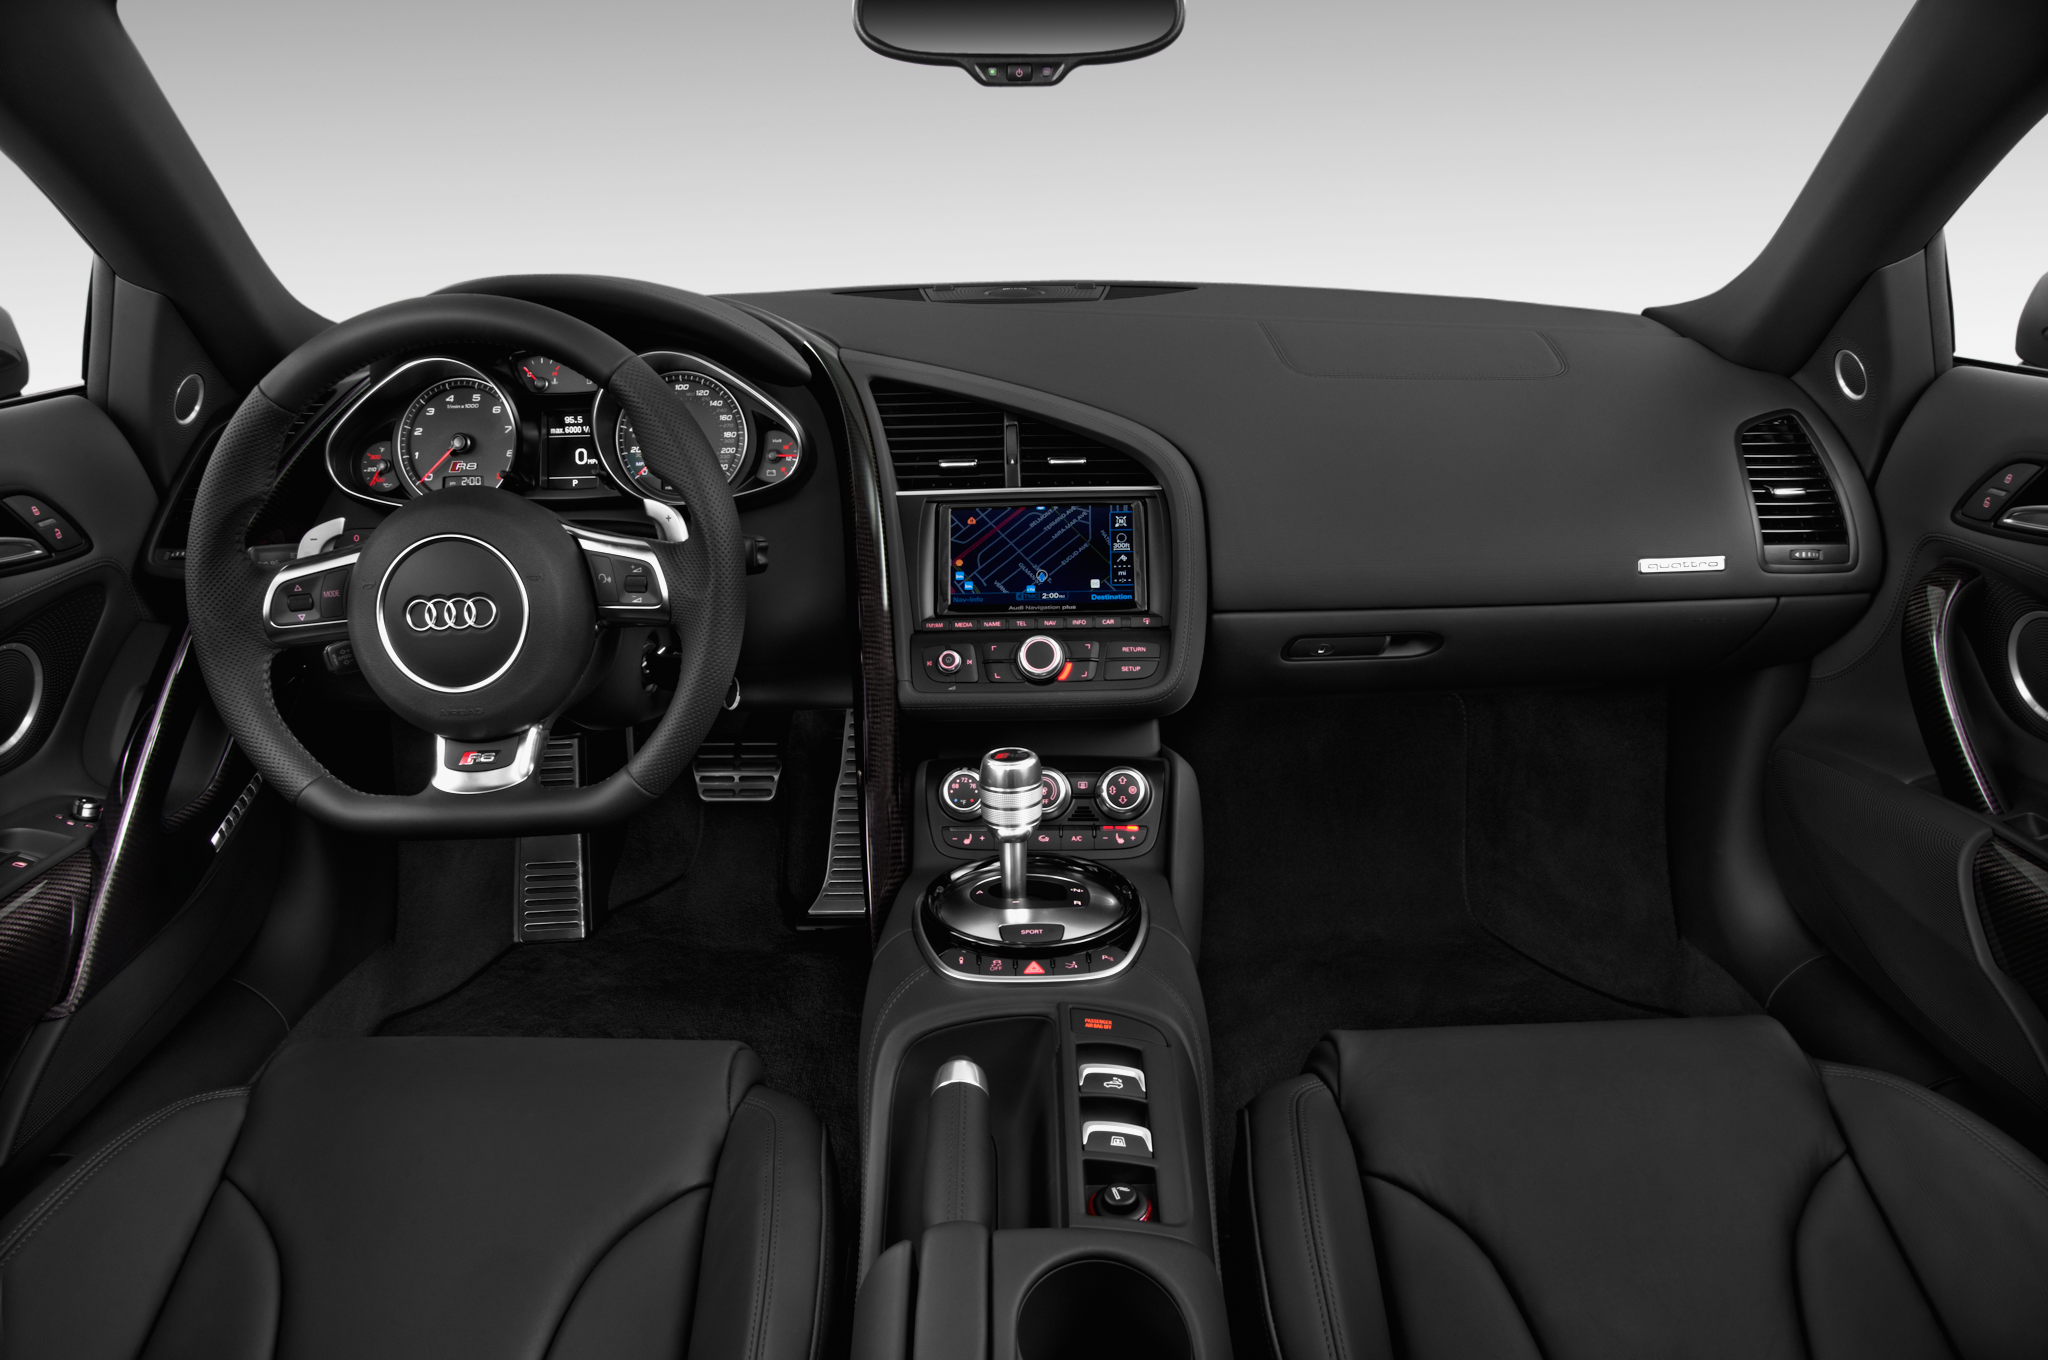 Today's Froggy 99.9 KVOX -FM Fargo ND, Moorhead MN Audi r8 dashboard pictures